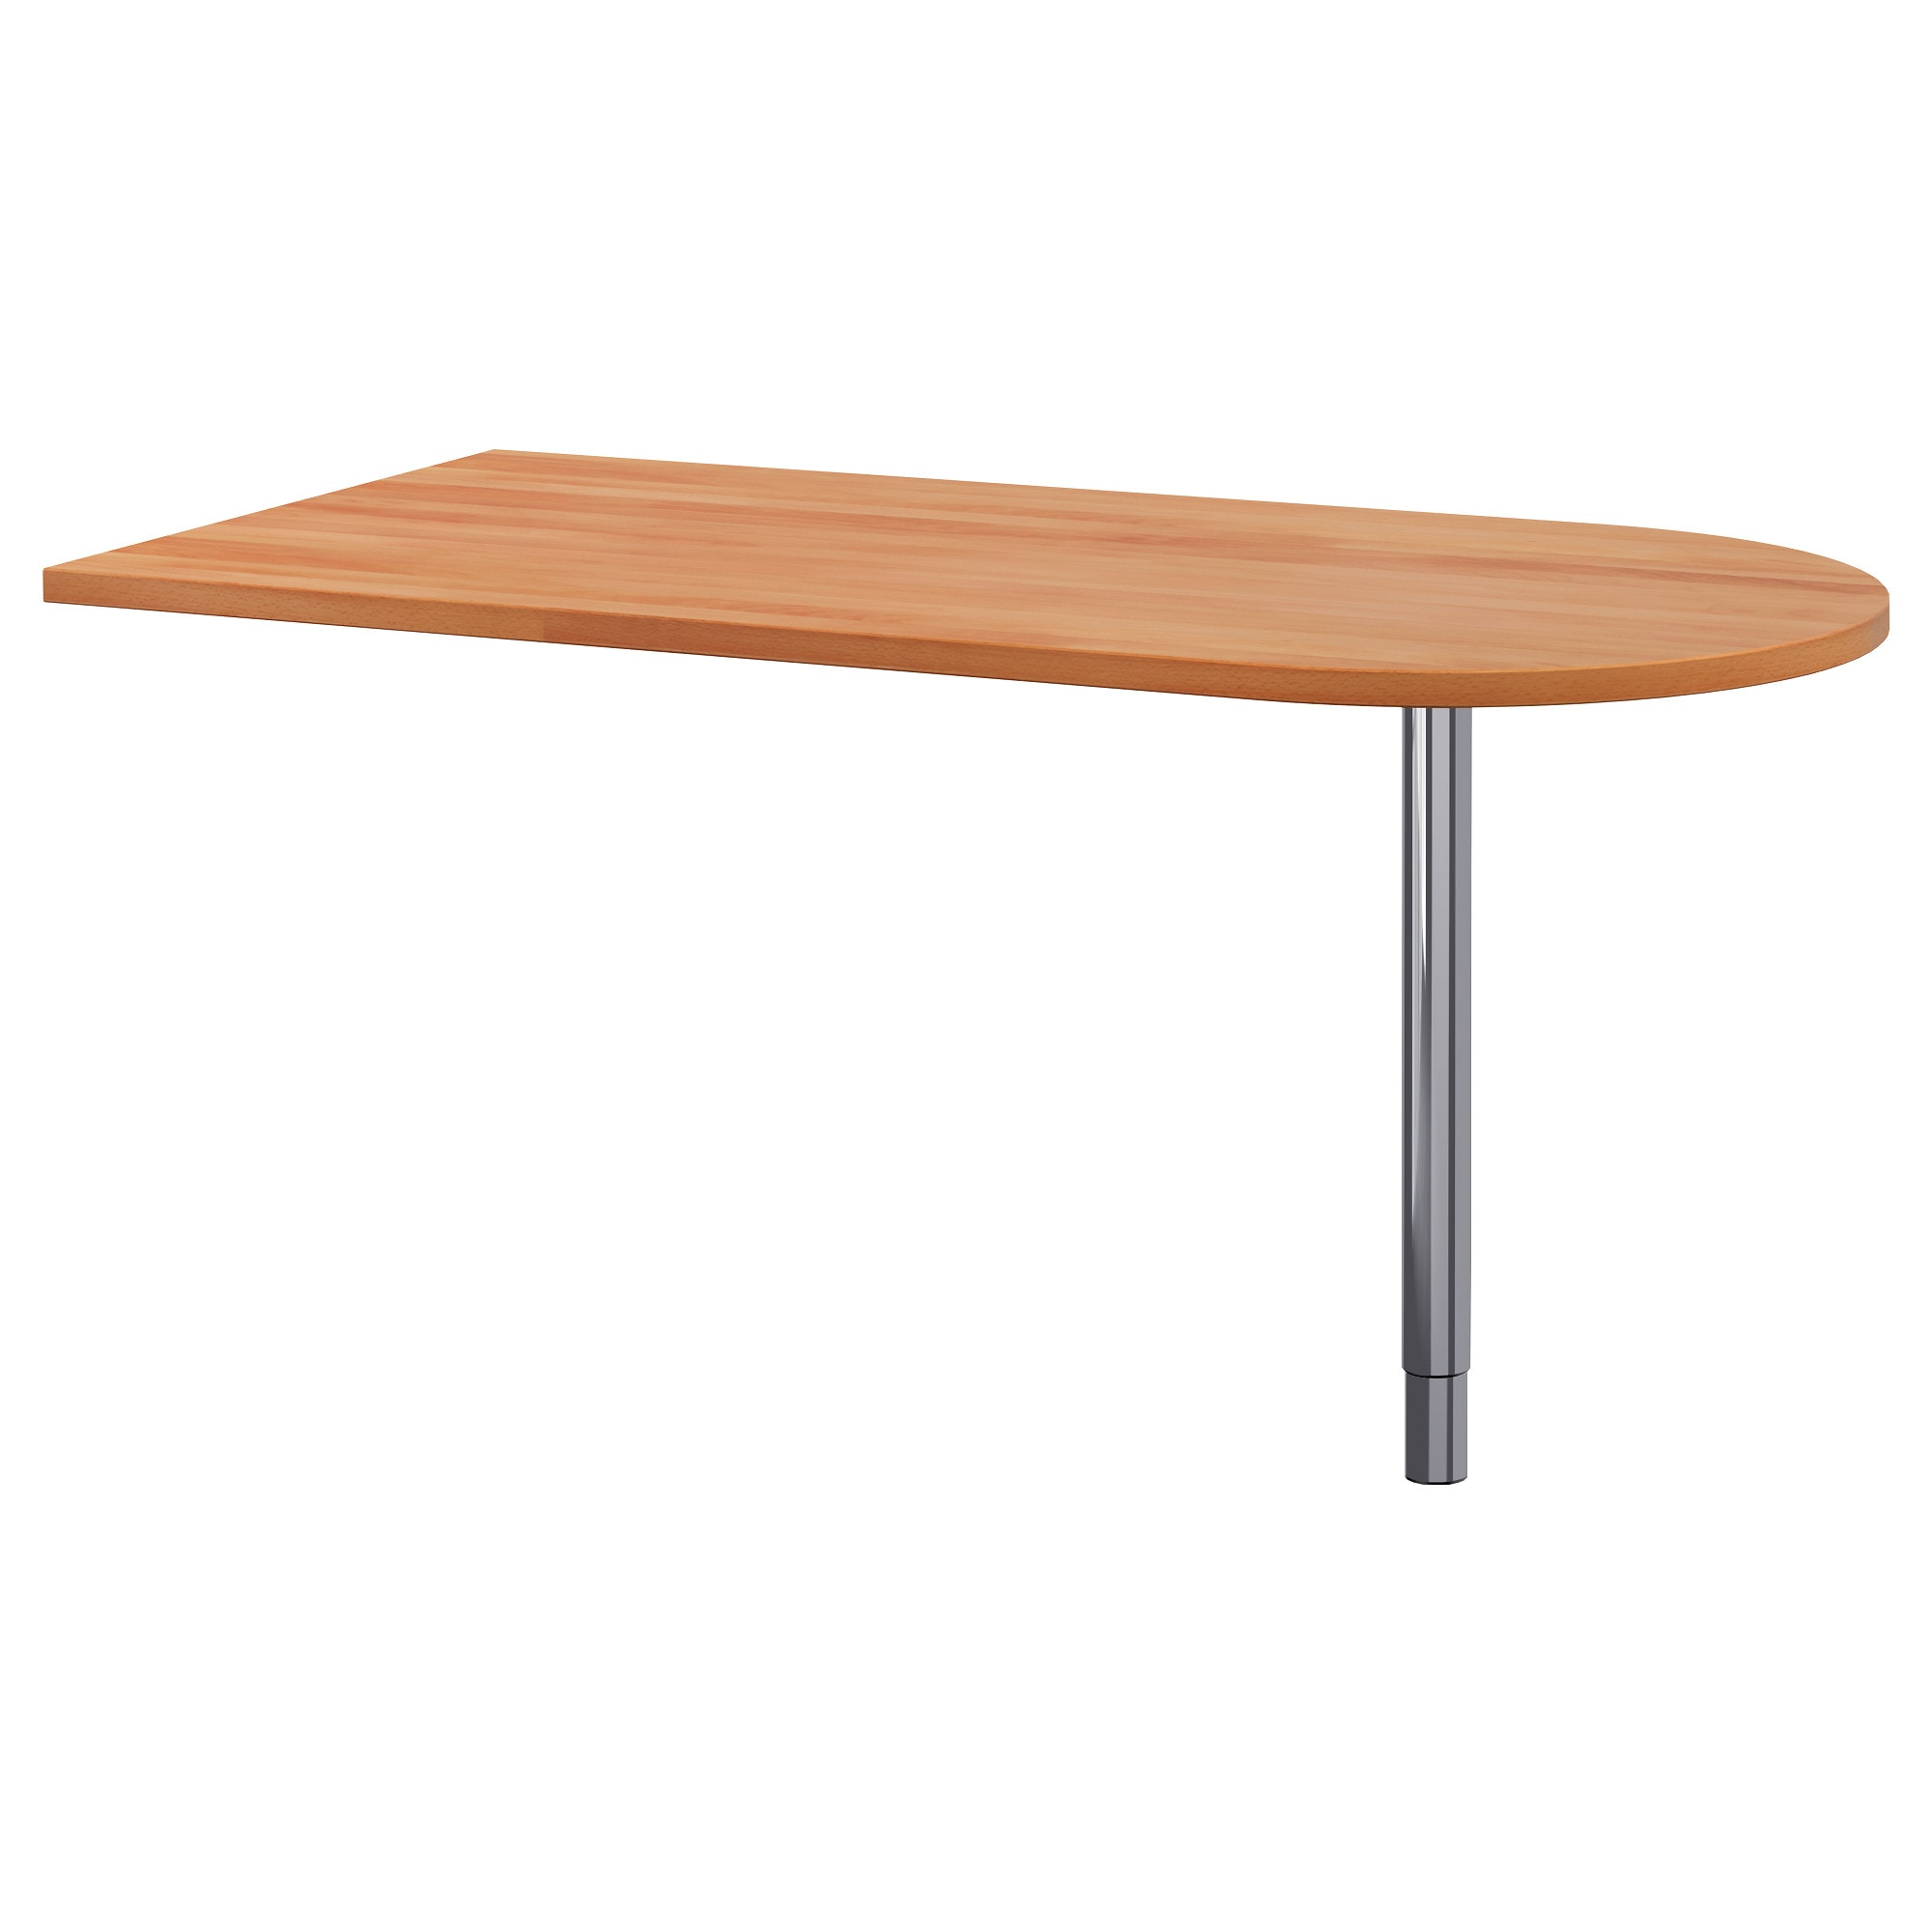 Table haute ika elegant elegant cuisine pose de cuisines for Table et chaise ikea